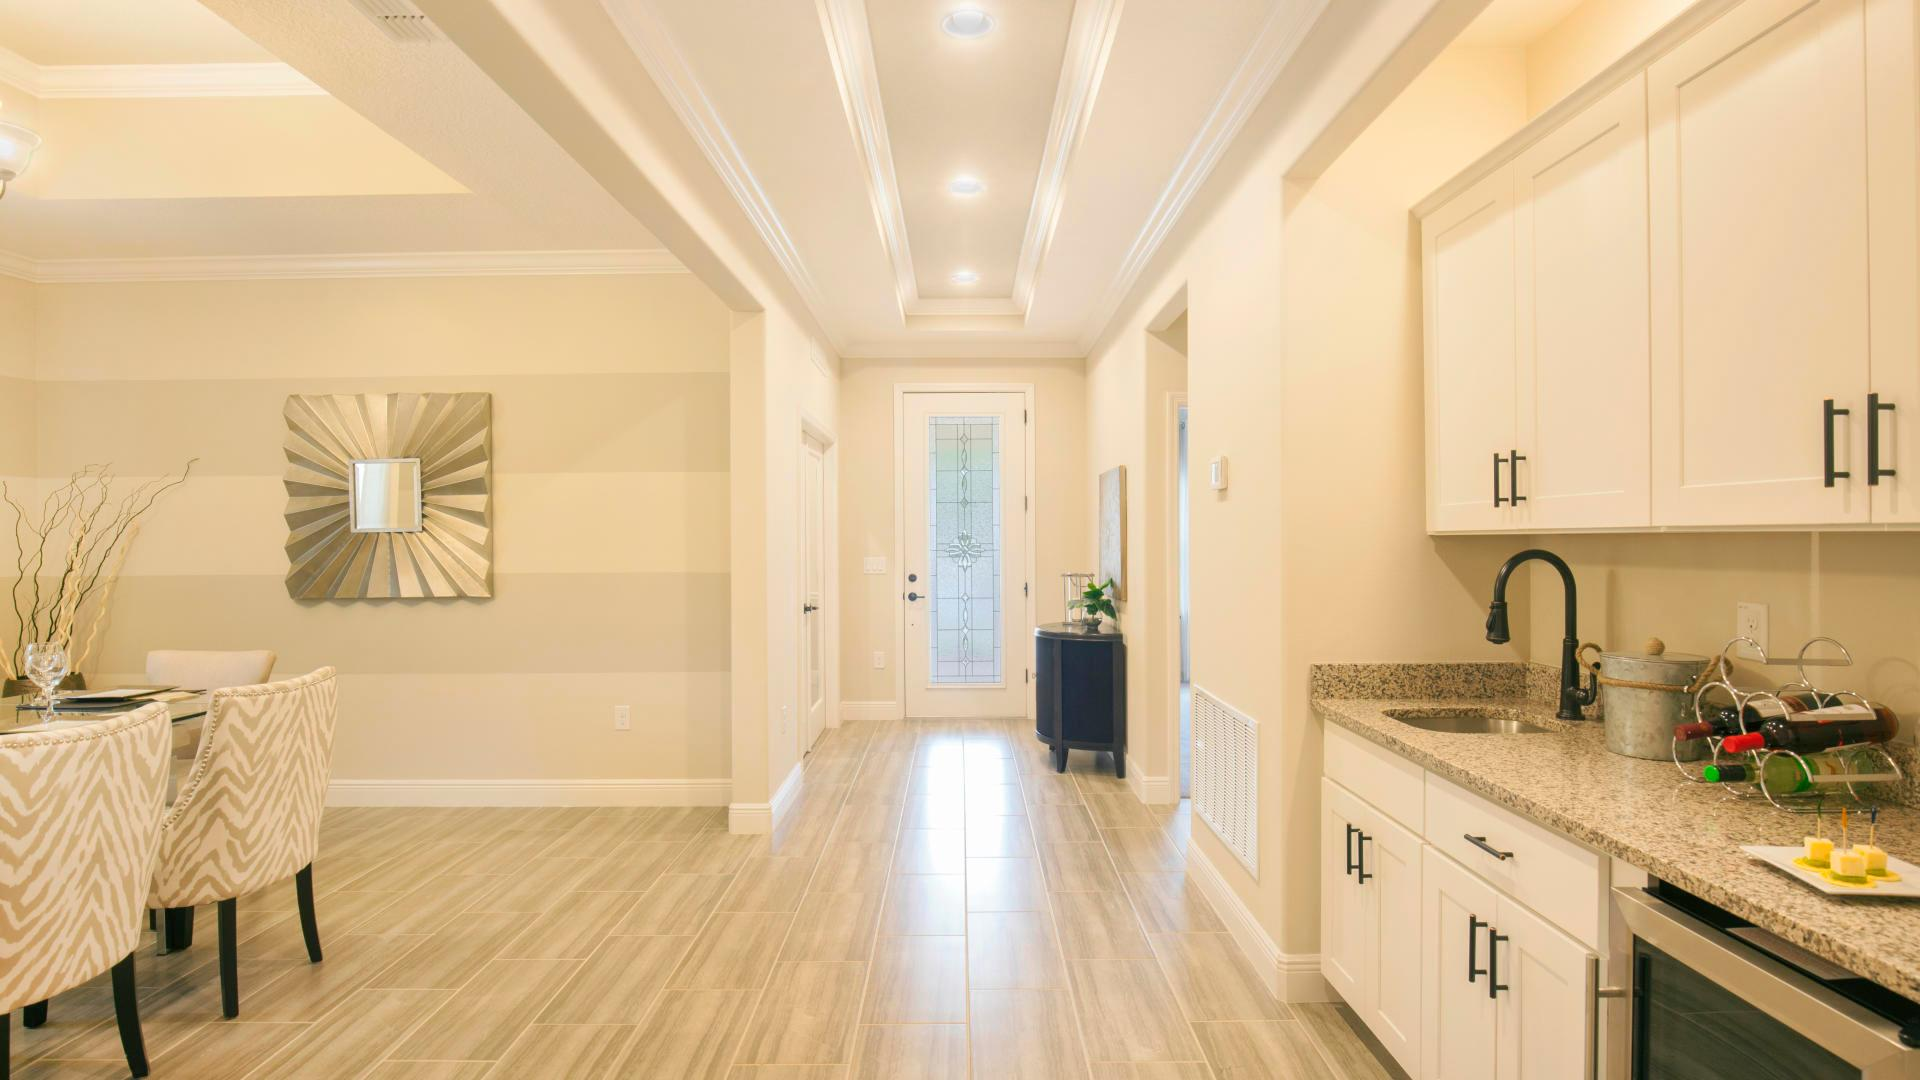 Living Area featured in the Livorno By Maronda Homes in Melbourne, FL